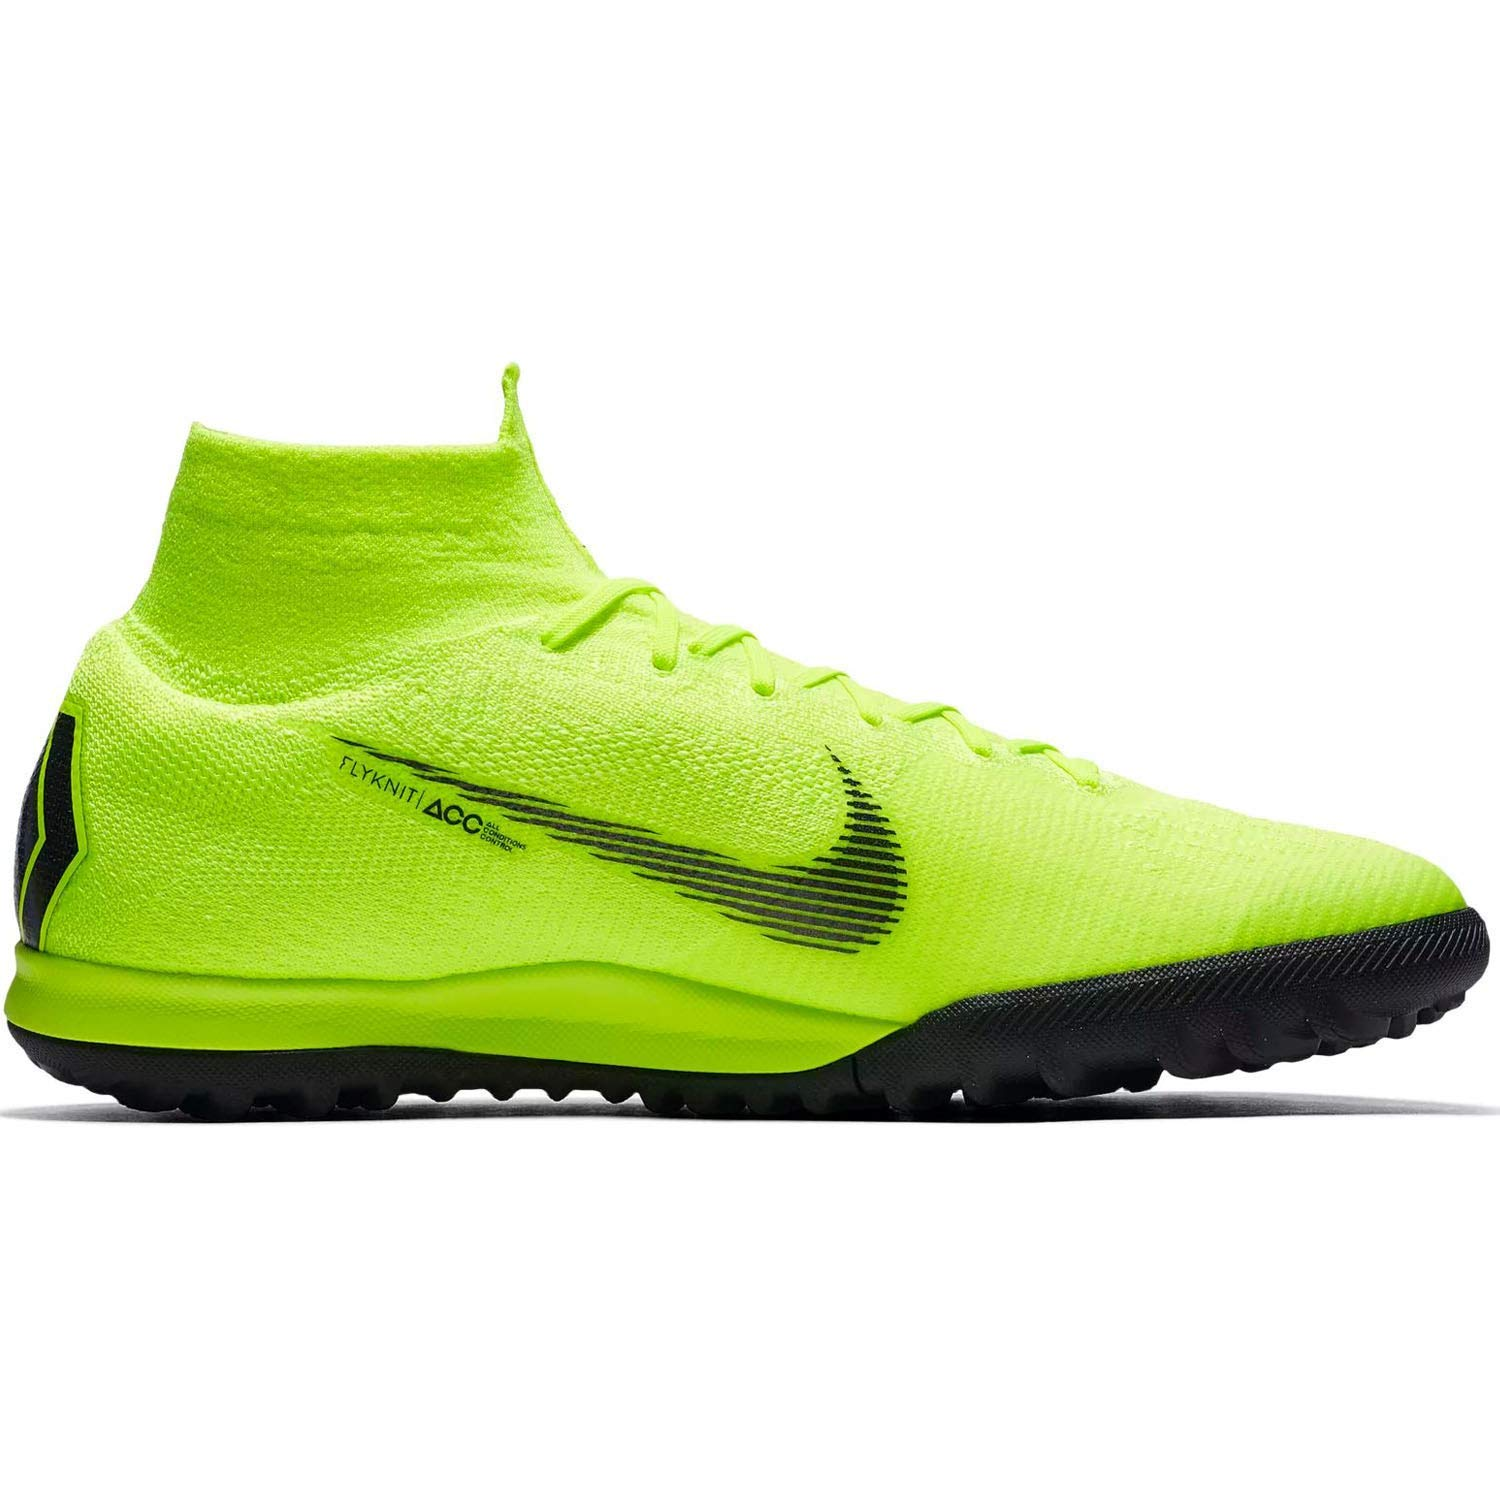 sports shoes f9e5d 511e4 NIKE Superfly 6 Elite TF